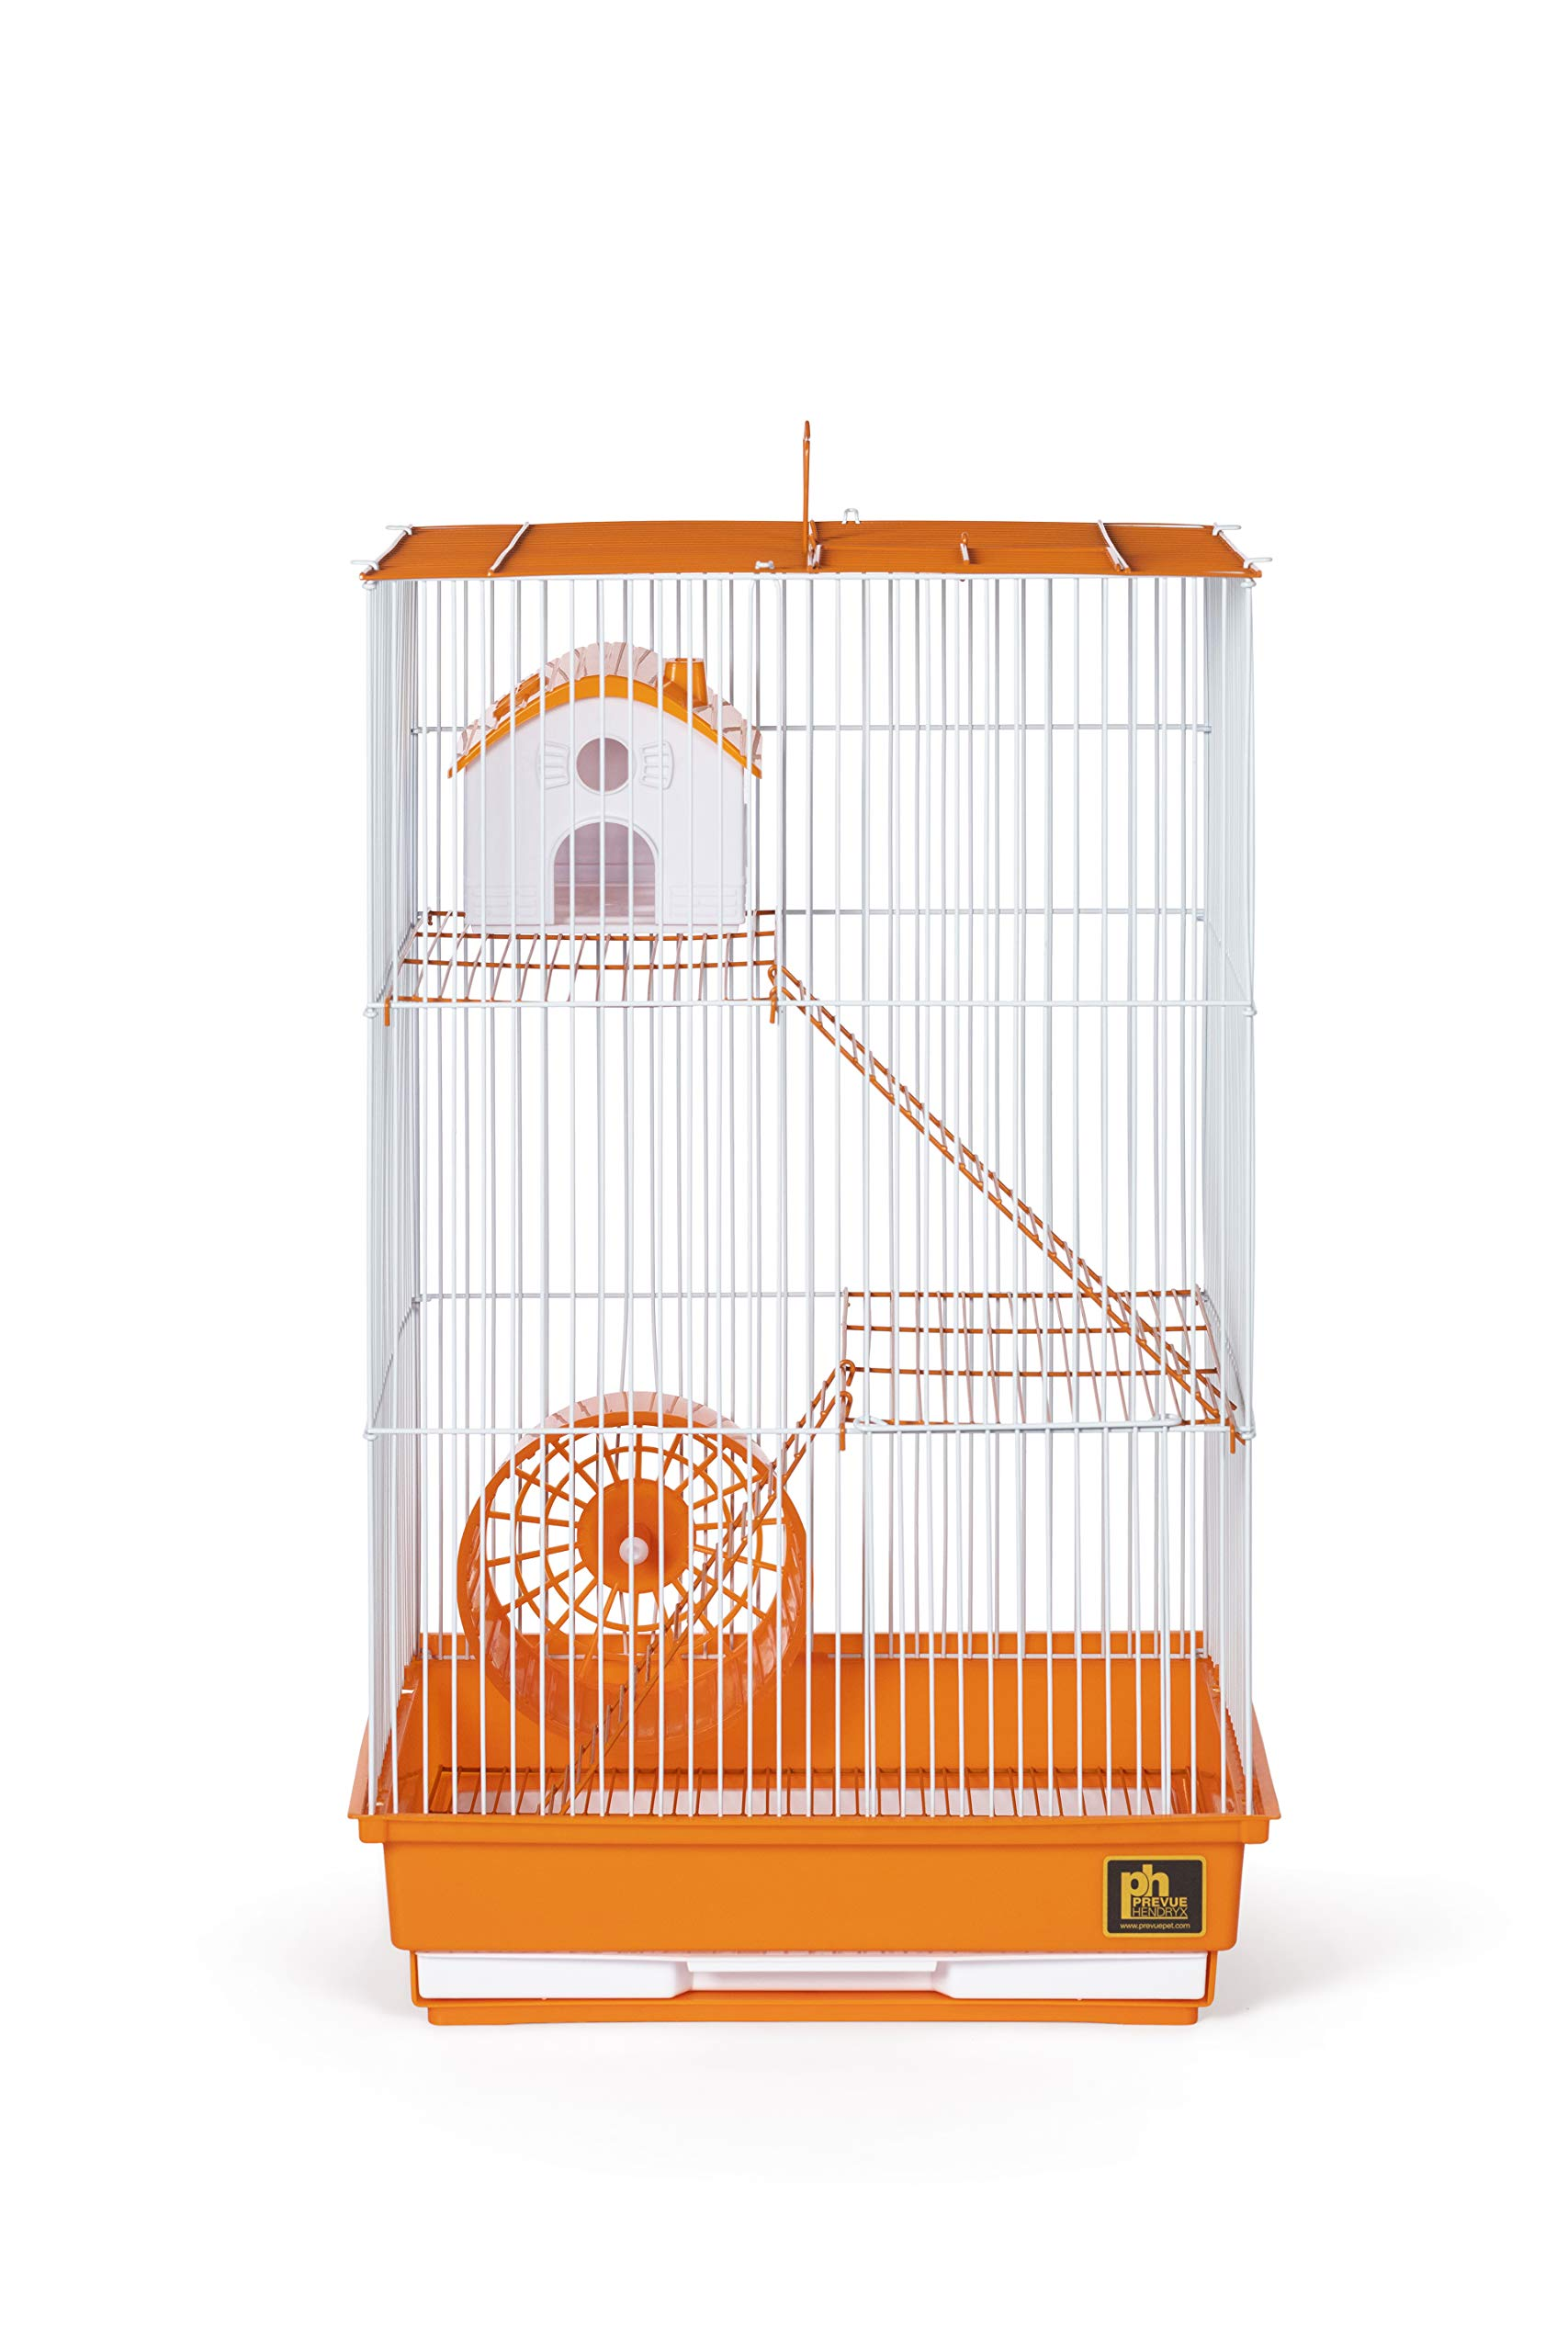 Prevue Pet Products Three-Story Hamster & Gerbil Cage Orange & White SP2030O by Prevue Pet Products (Image #5)